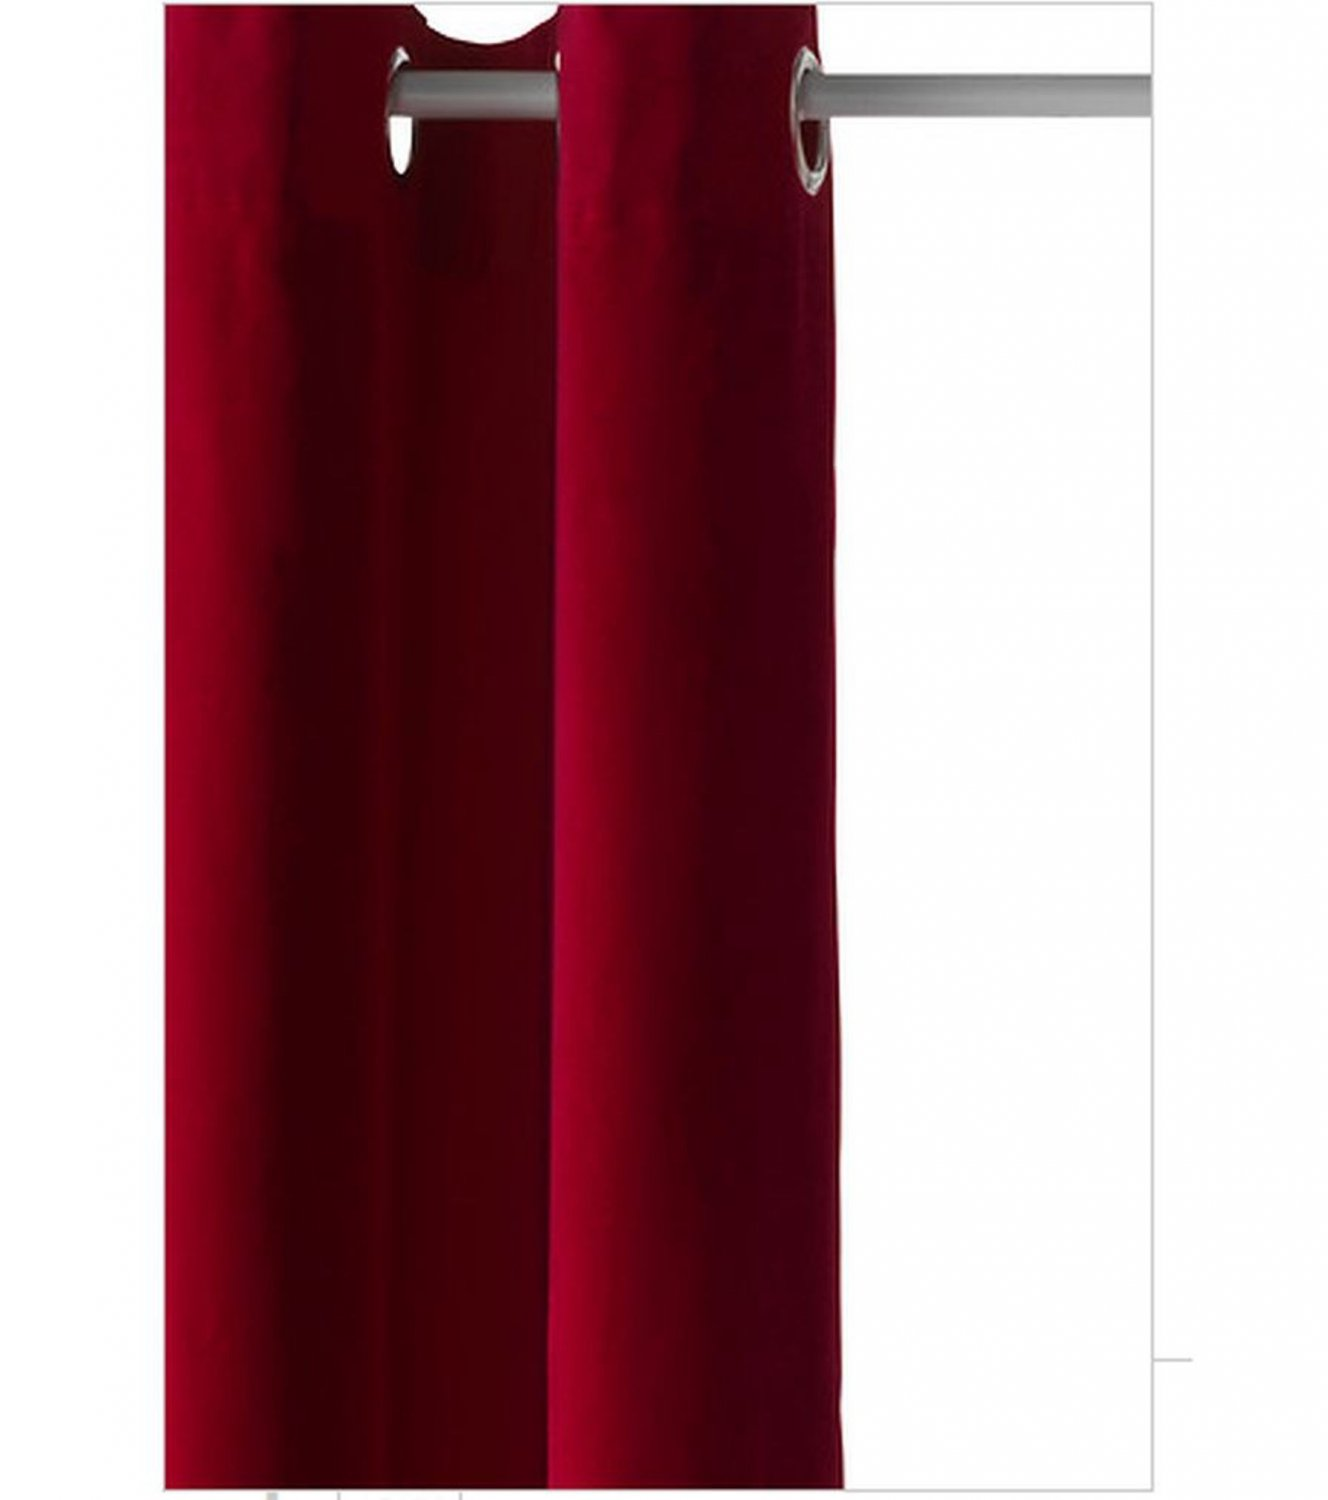 ikea sanela curtains drapes 2 panels red velvet 98 grommets. Black Bedroom Furniture Sets. Home Design Ideas